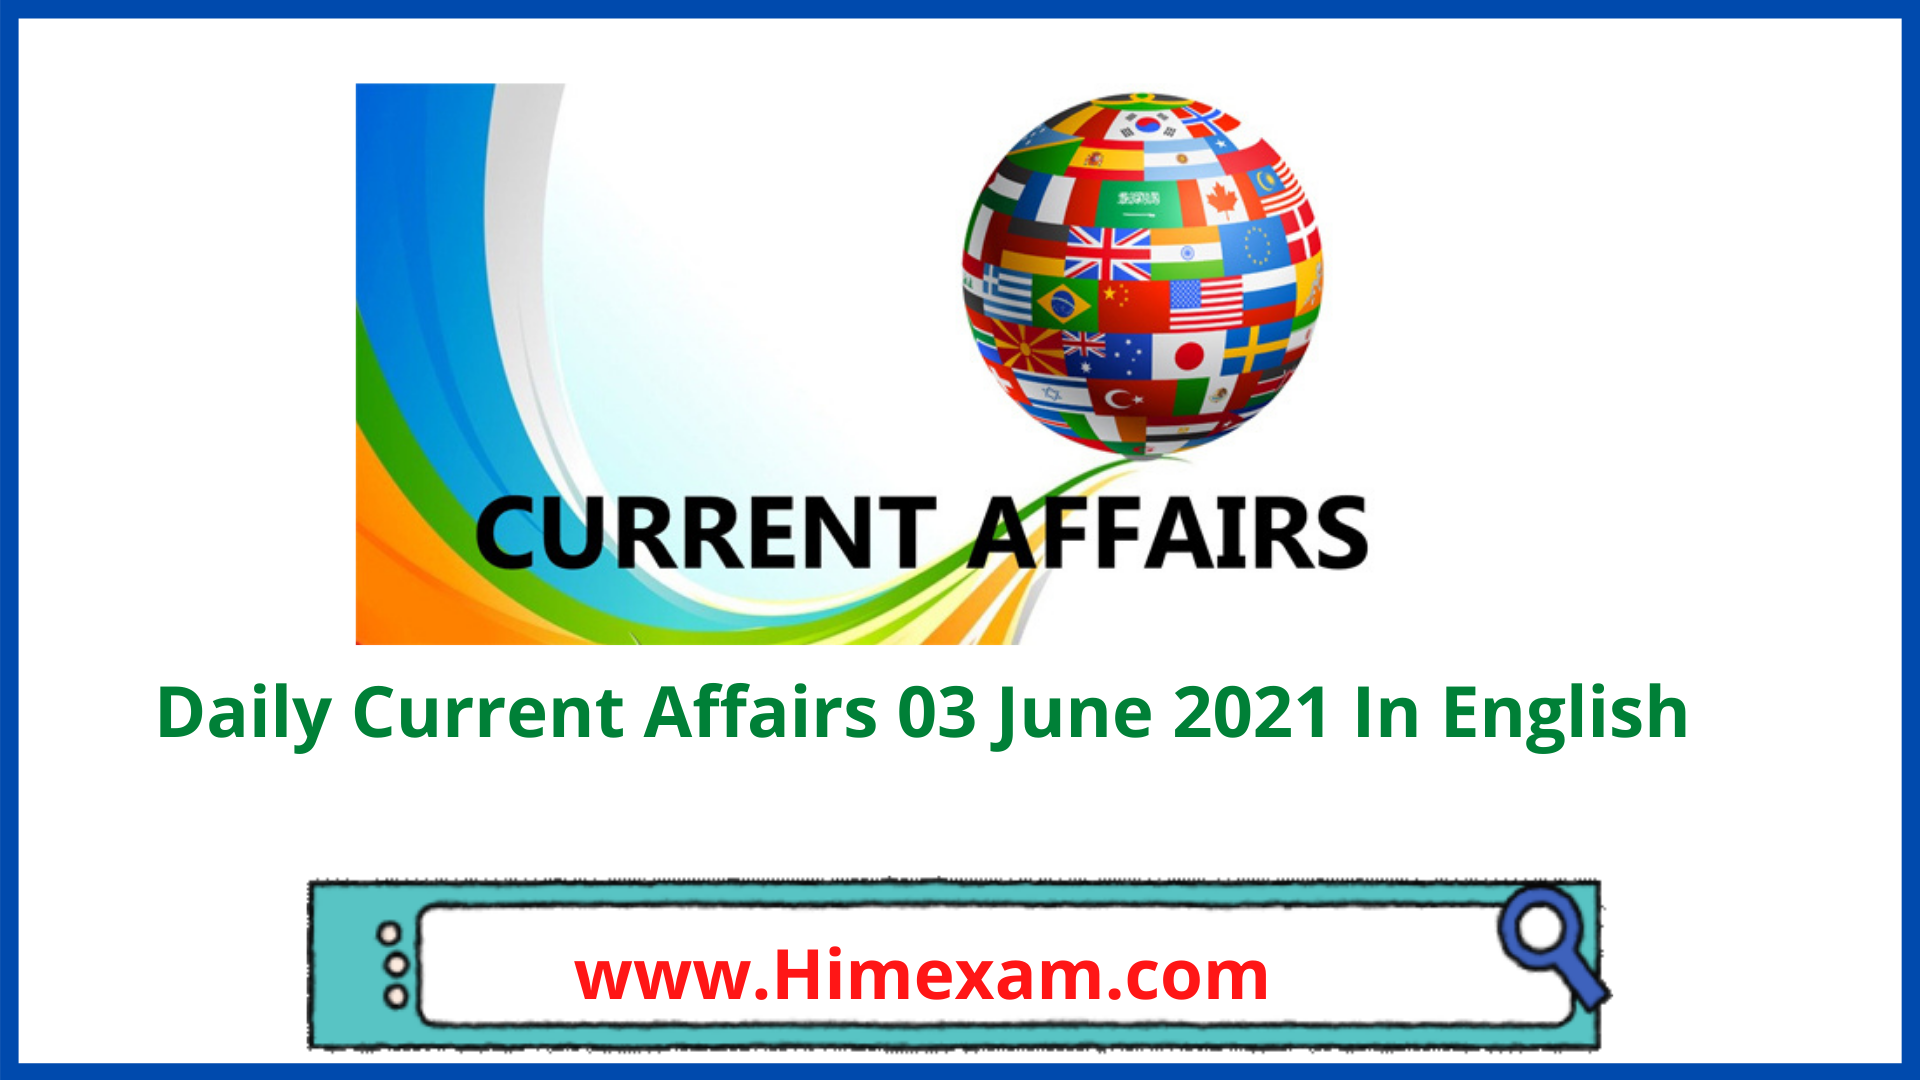 Daily Current Affairs 03 June 2021